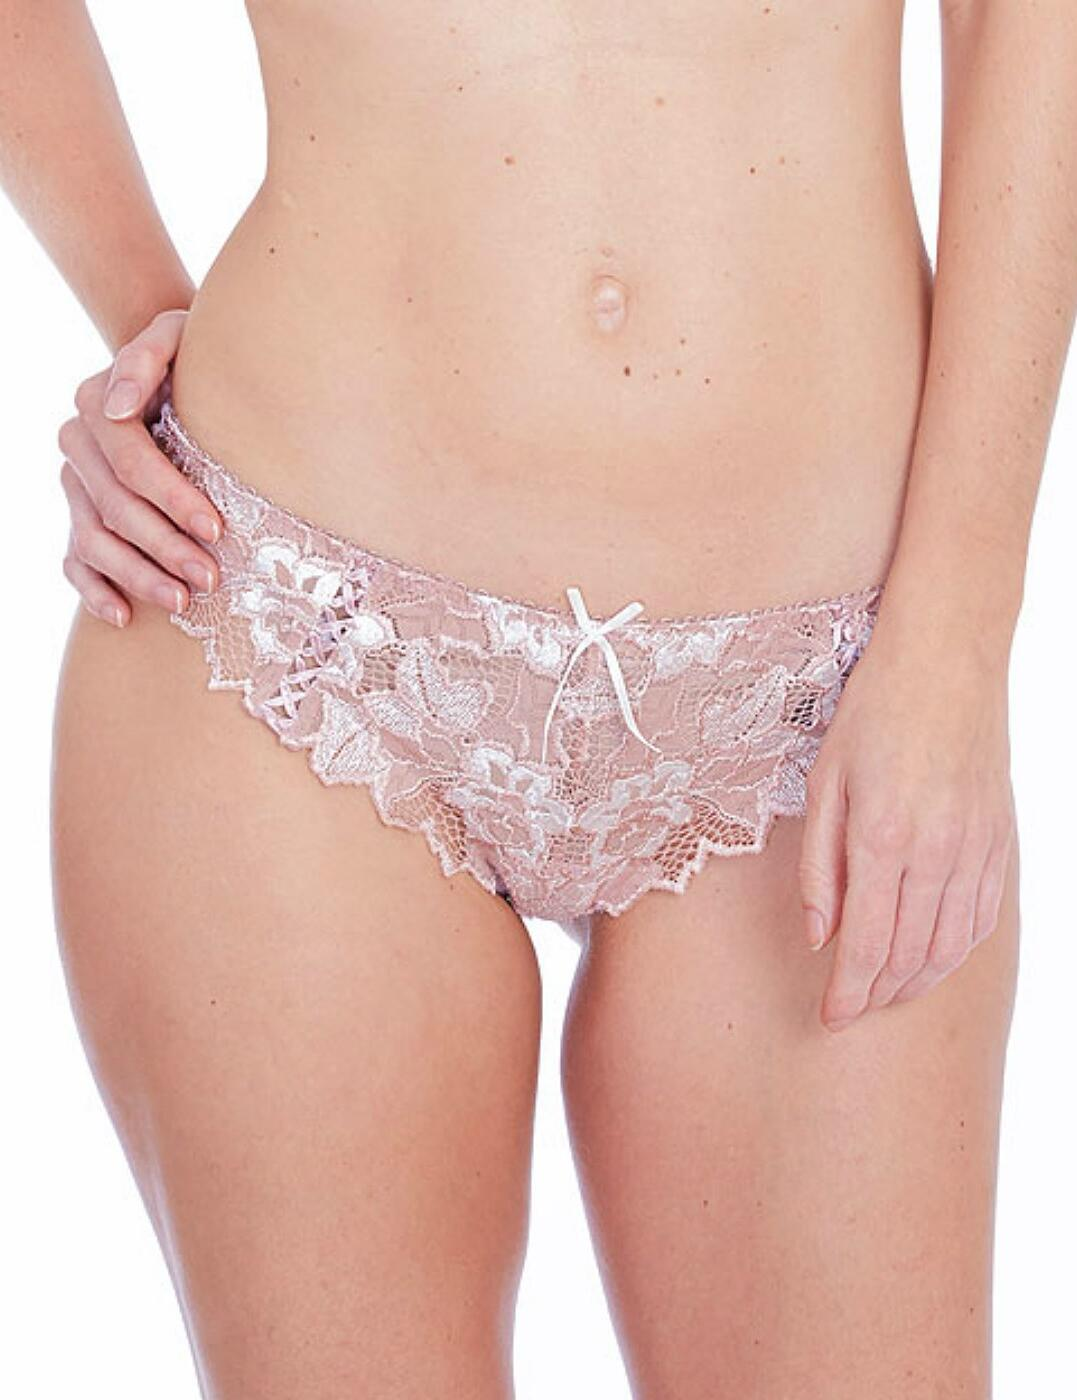 0932120 Lepel Fiore Thong - 0932120 Rose Gold/Ivory